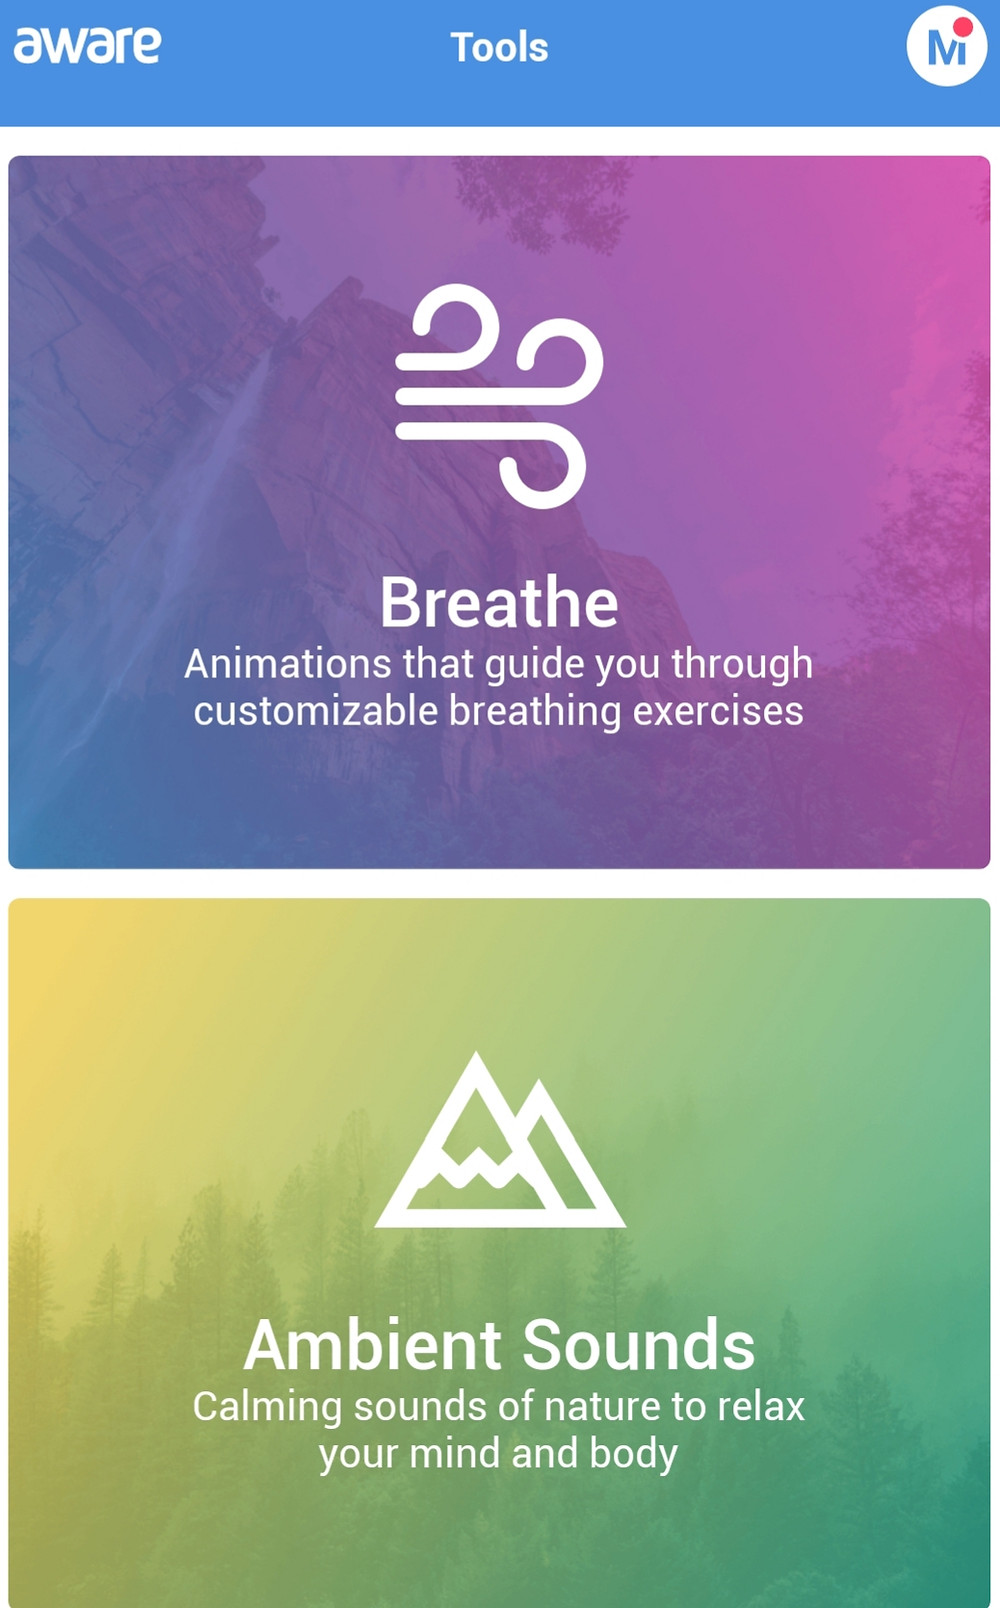 The Aware App is great to reduce stress and help meditation and mindfulness